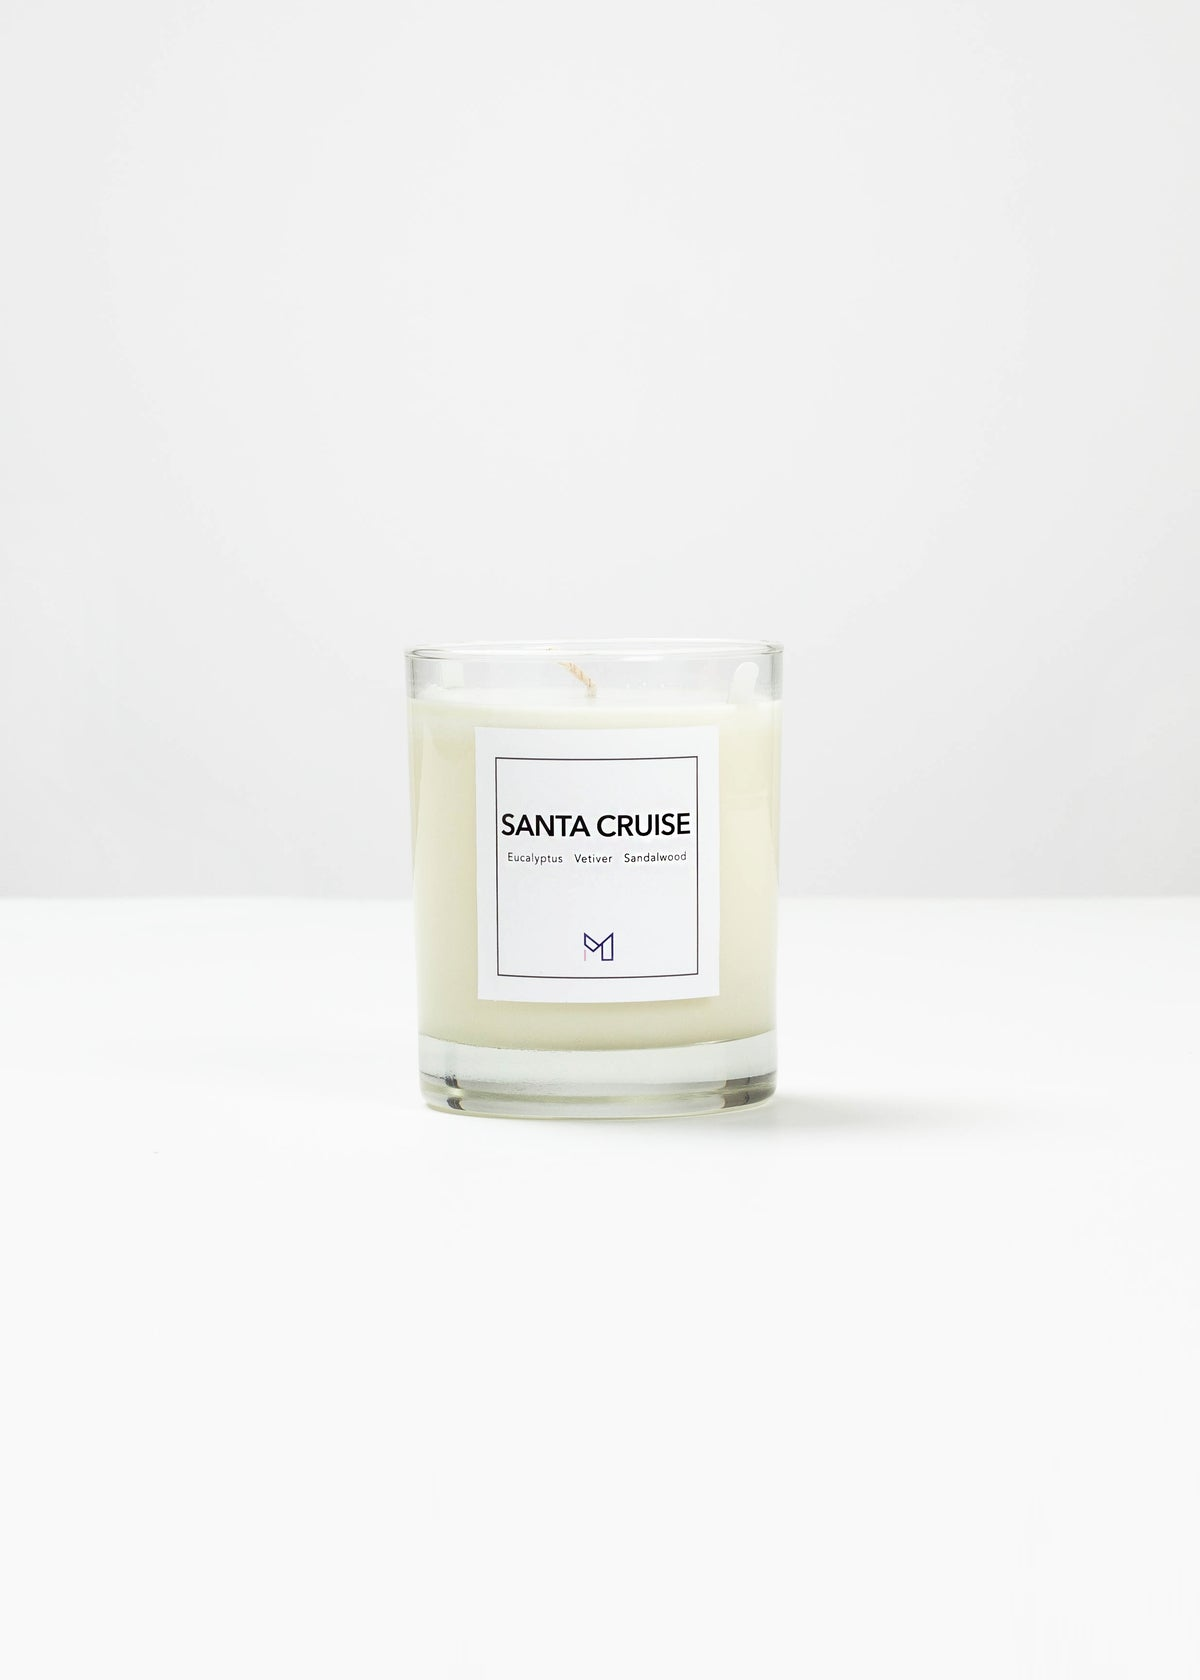 Corporate Gift - Santa Cruise Candle